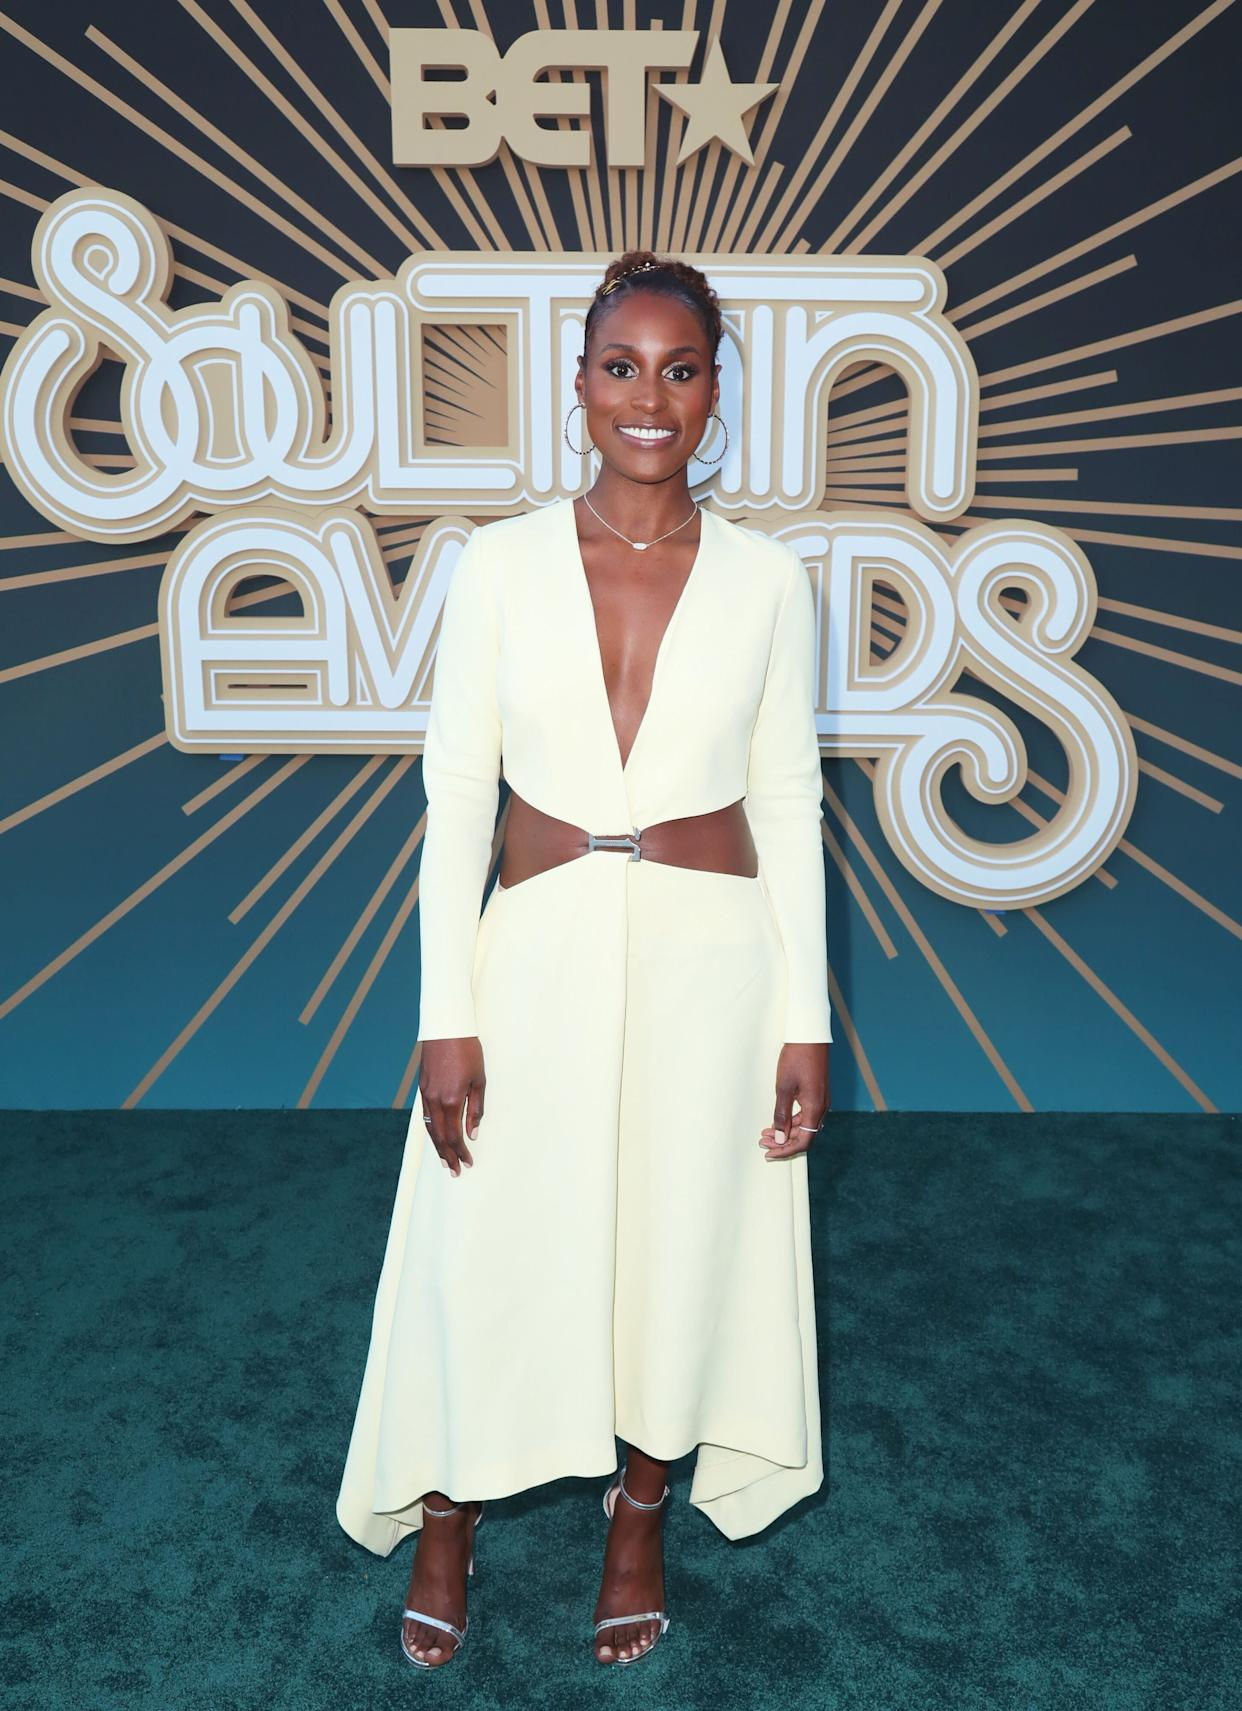 Issa Rae at the 2019 Soul Train awards presented by BET in Las Vegas on Nov. 17.